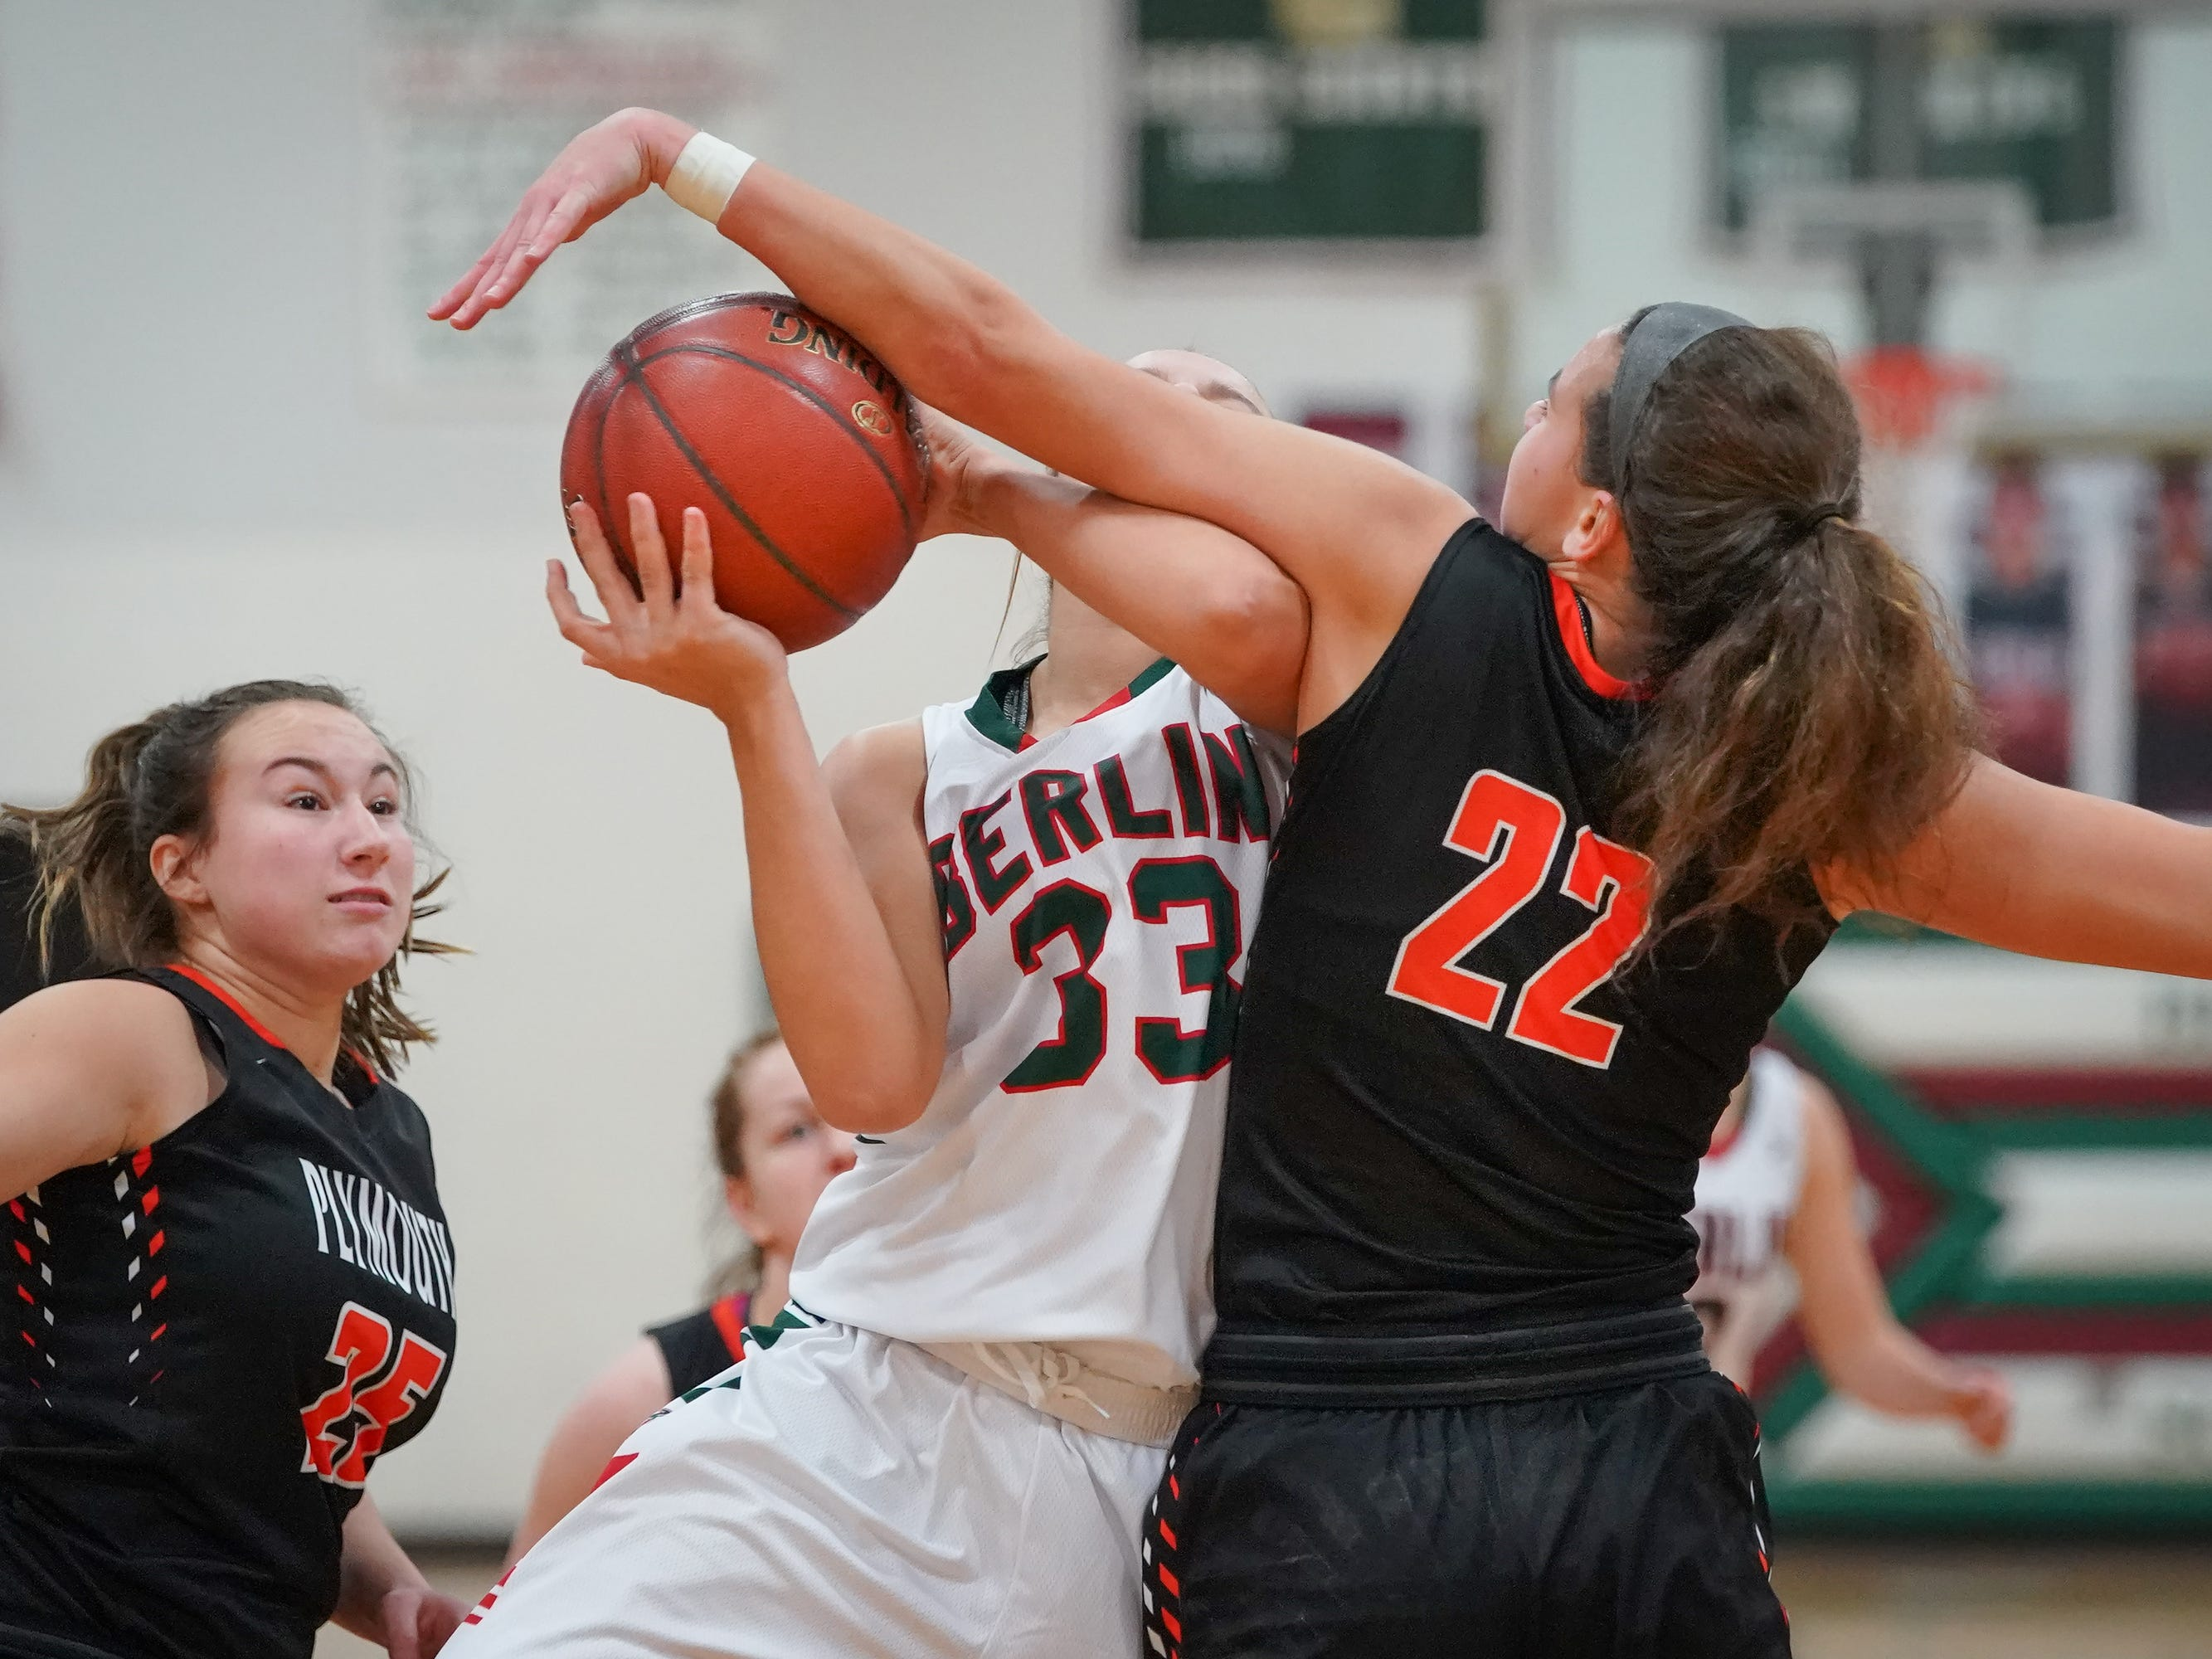 Madalyn Naparalla (33) of Berlin gets a shot blocked by Kalani Smith (22) of Plymouth. The Berlin Indians hosted the Plymouth Panthers in an East Central Conference basketball game Thursday evening, December 13, 2018.